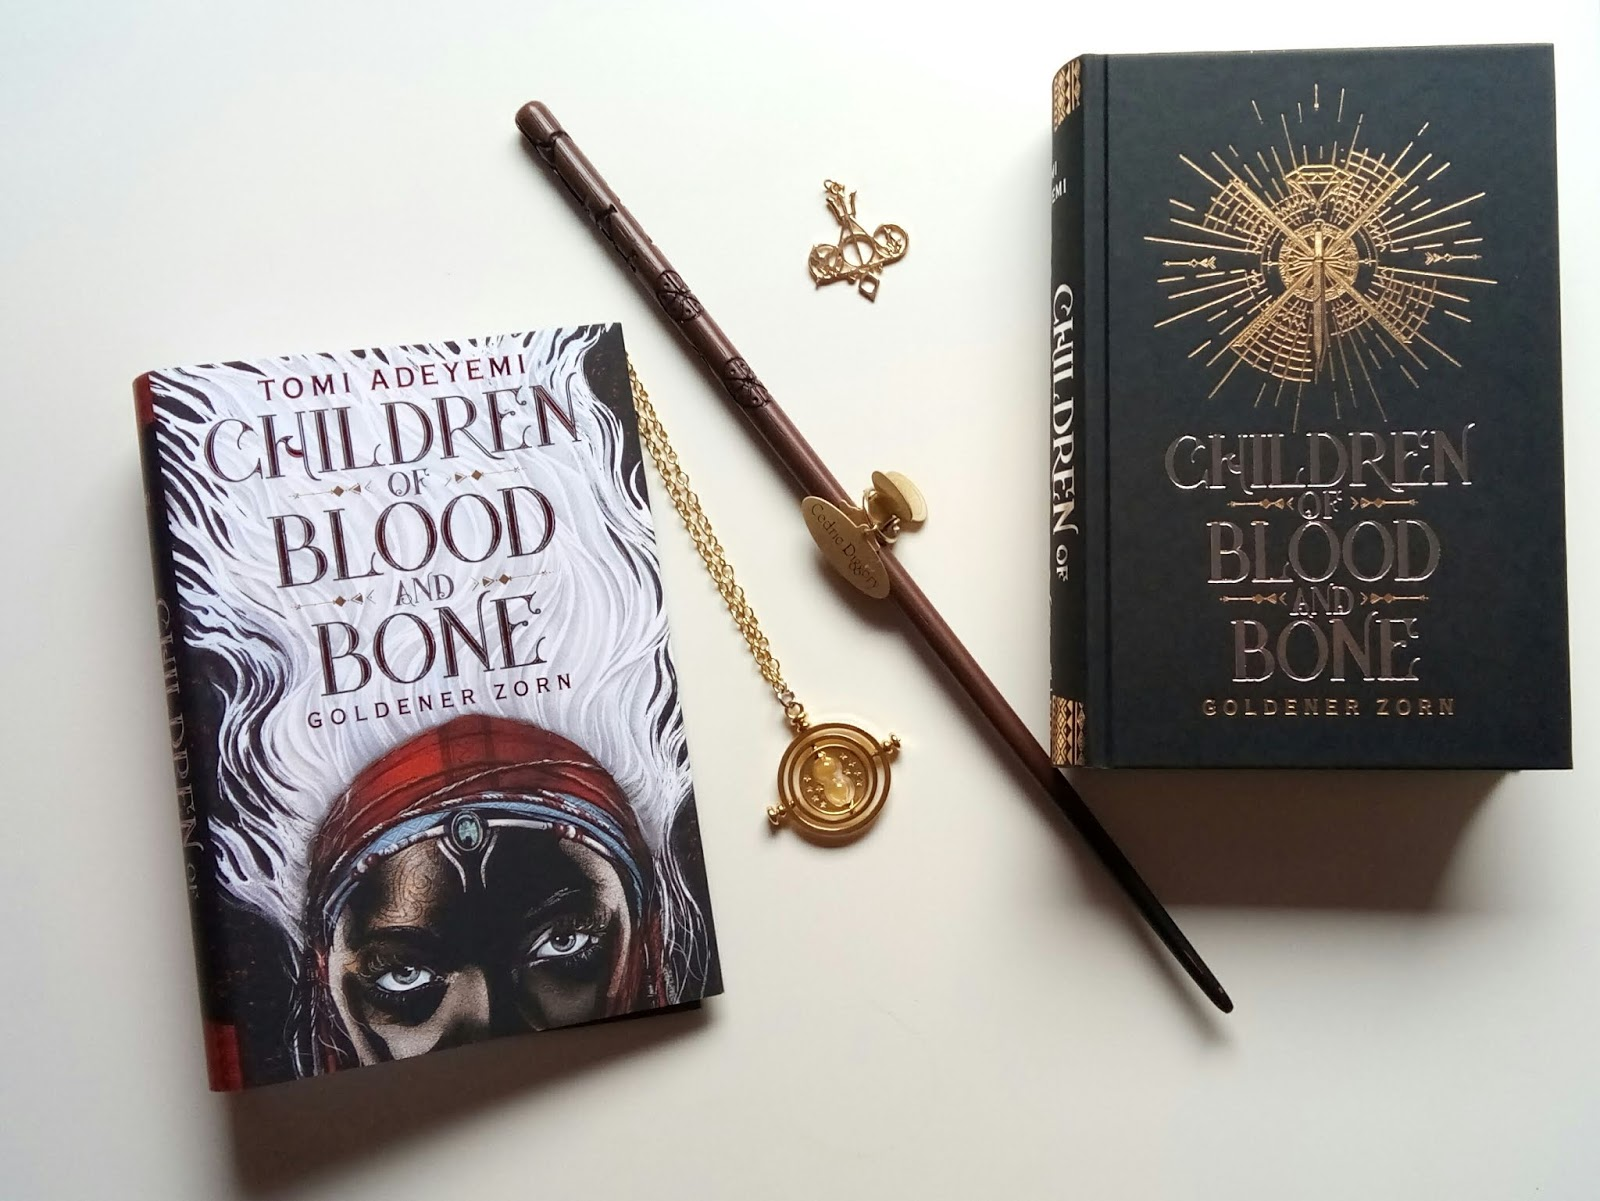 {Rezension} Children Of Blood And Bone - Goldener Zorn | Tomi Adeyemi